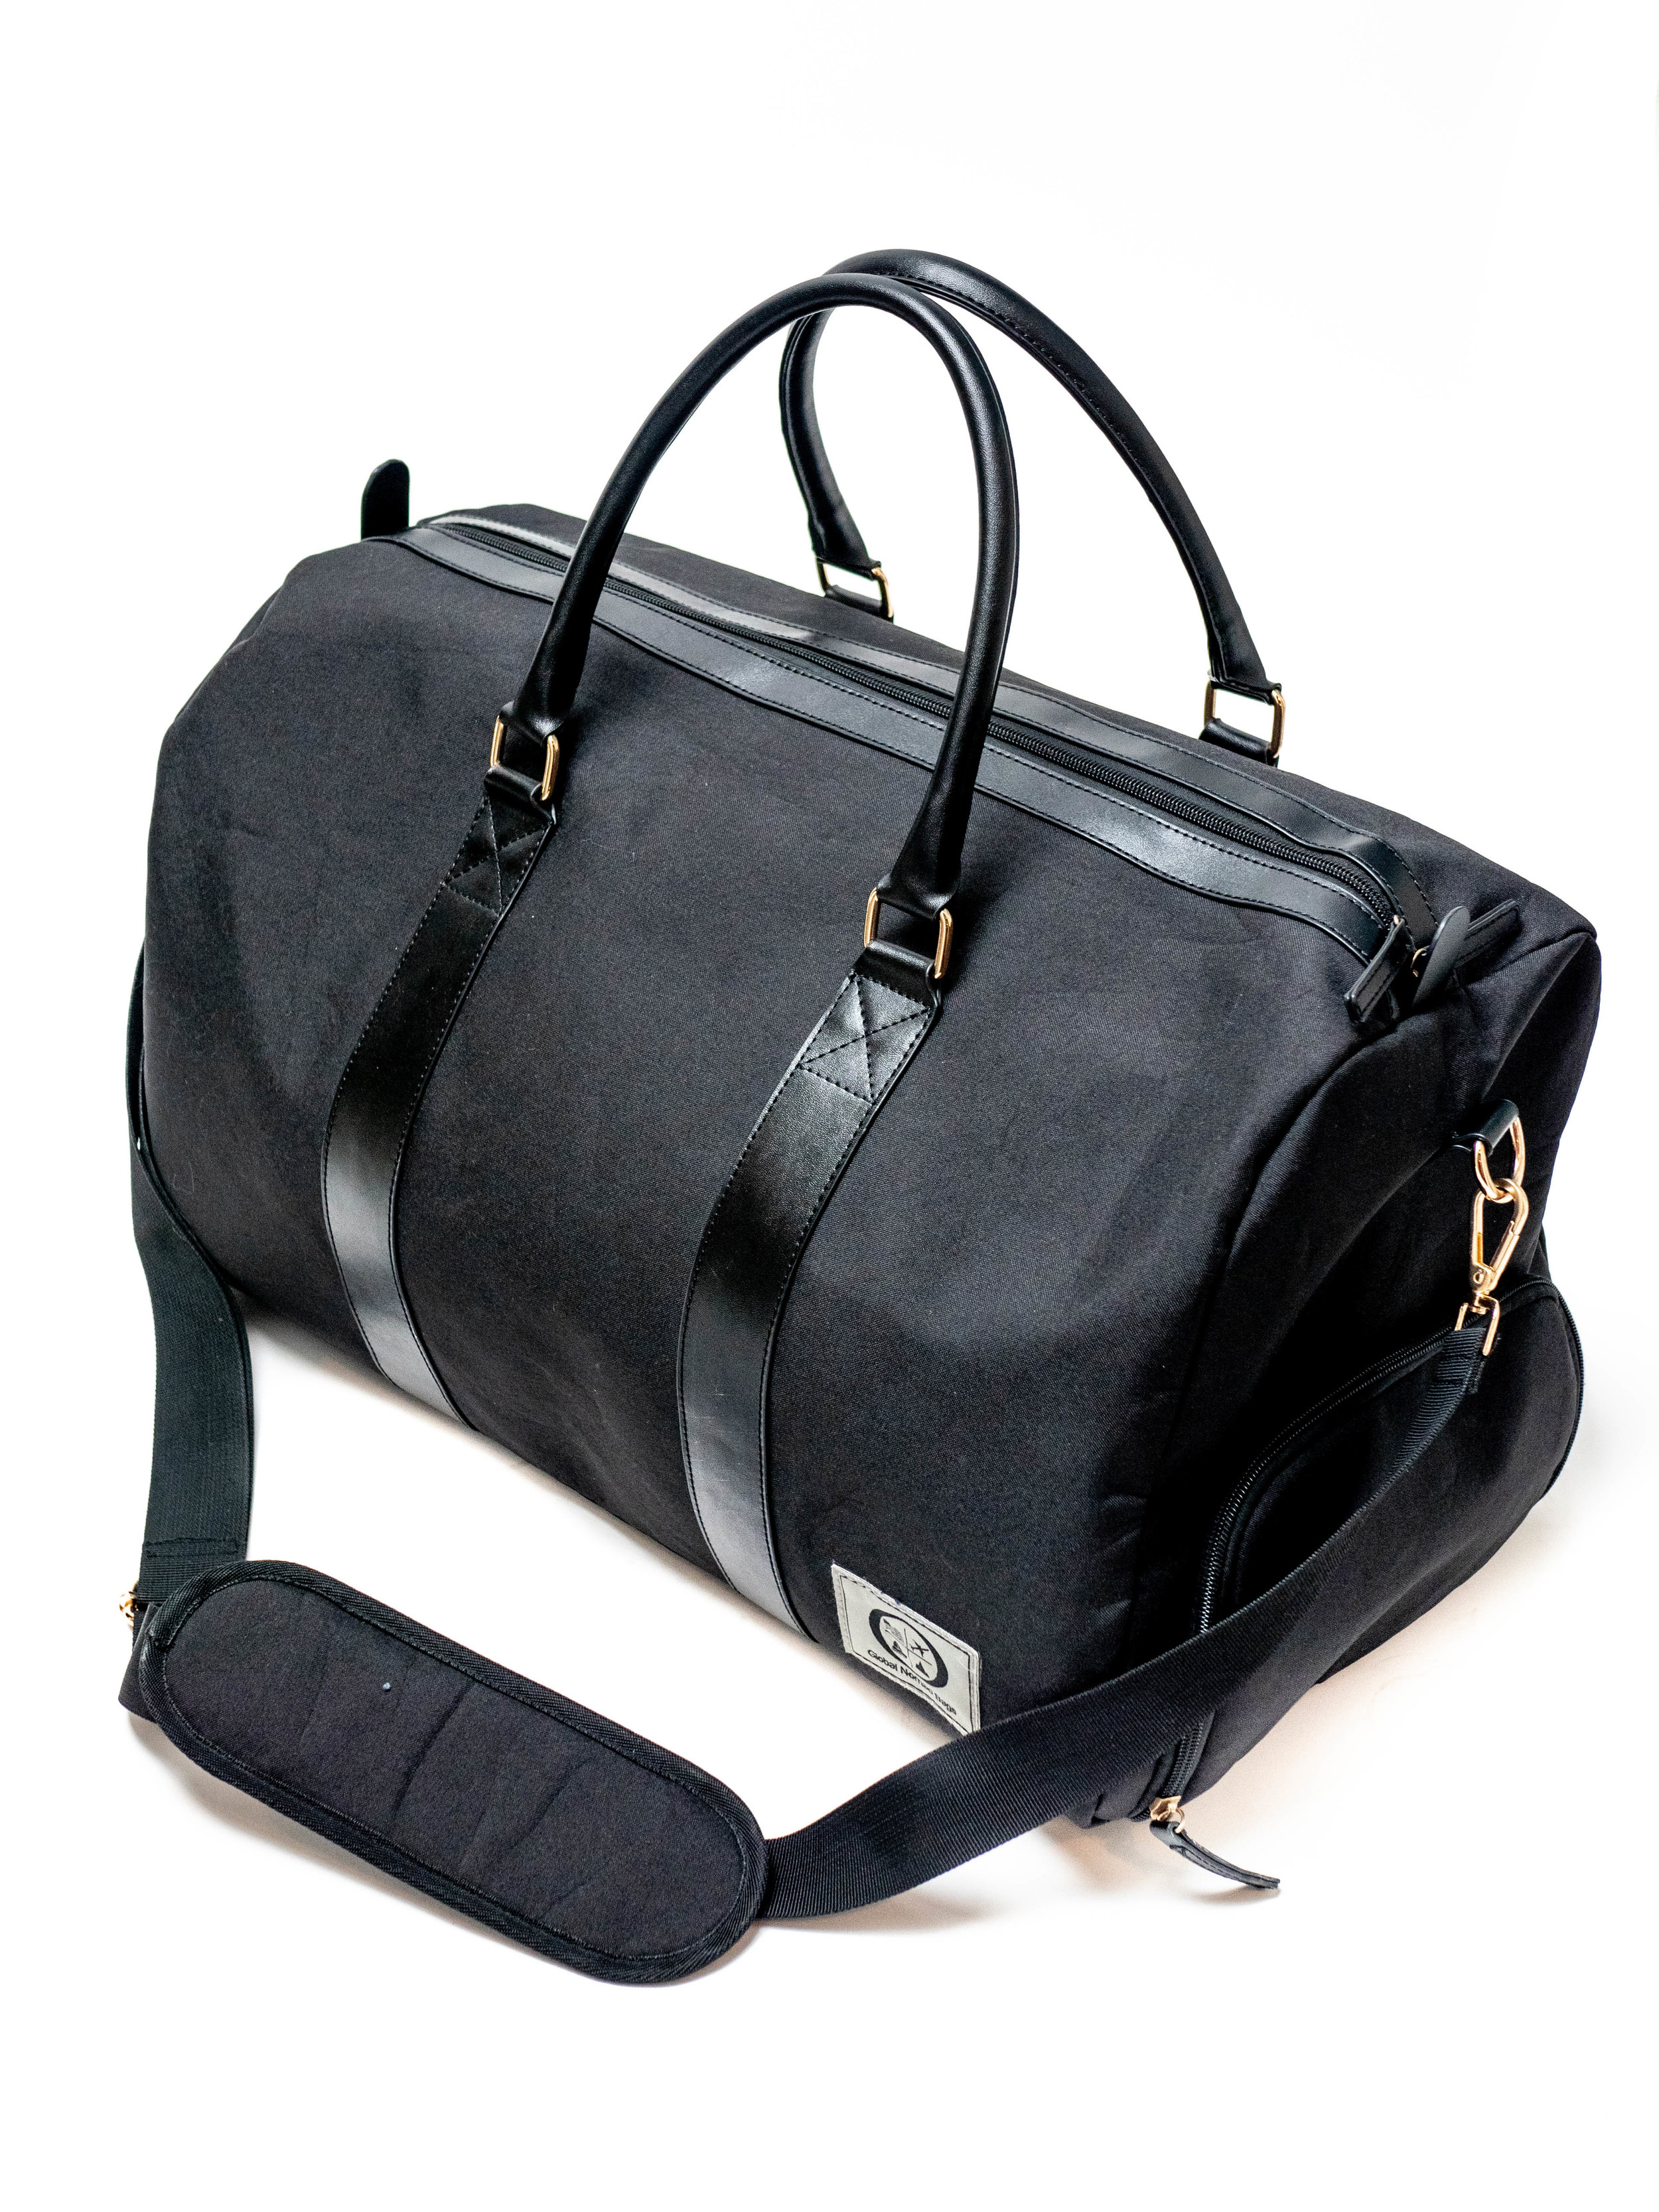 The perfect travel companion - Designed to meet the airline personal baggage size, this is ideal for trips across the world to trips to the gym.